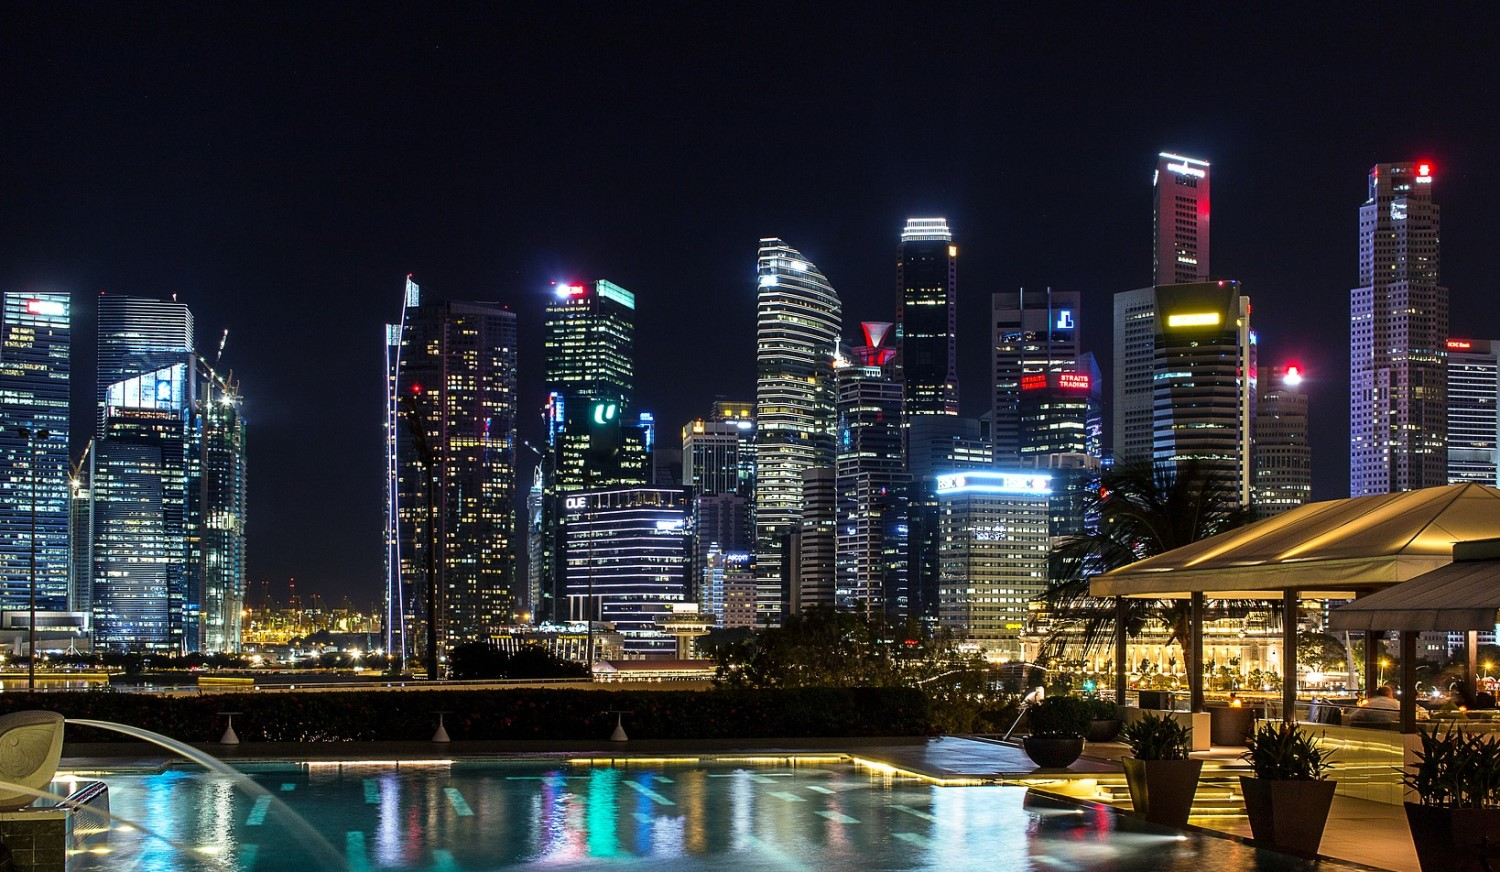 Singapore Crypto Exchange Considers IPO After 500% Trading Growth: Report